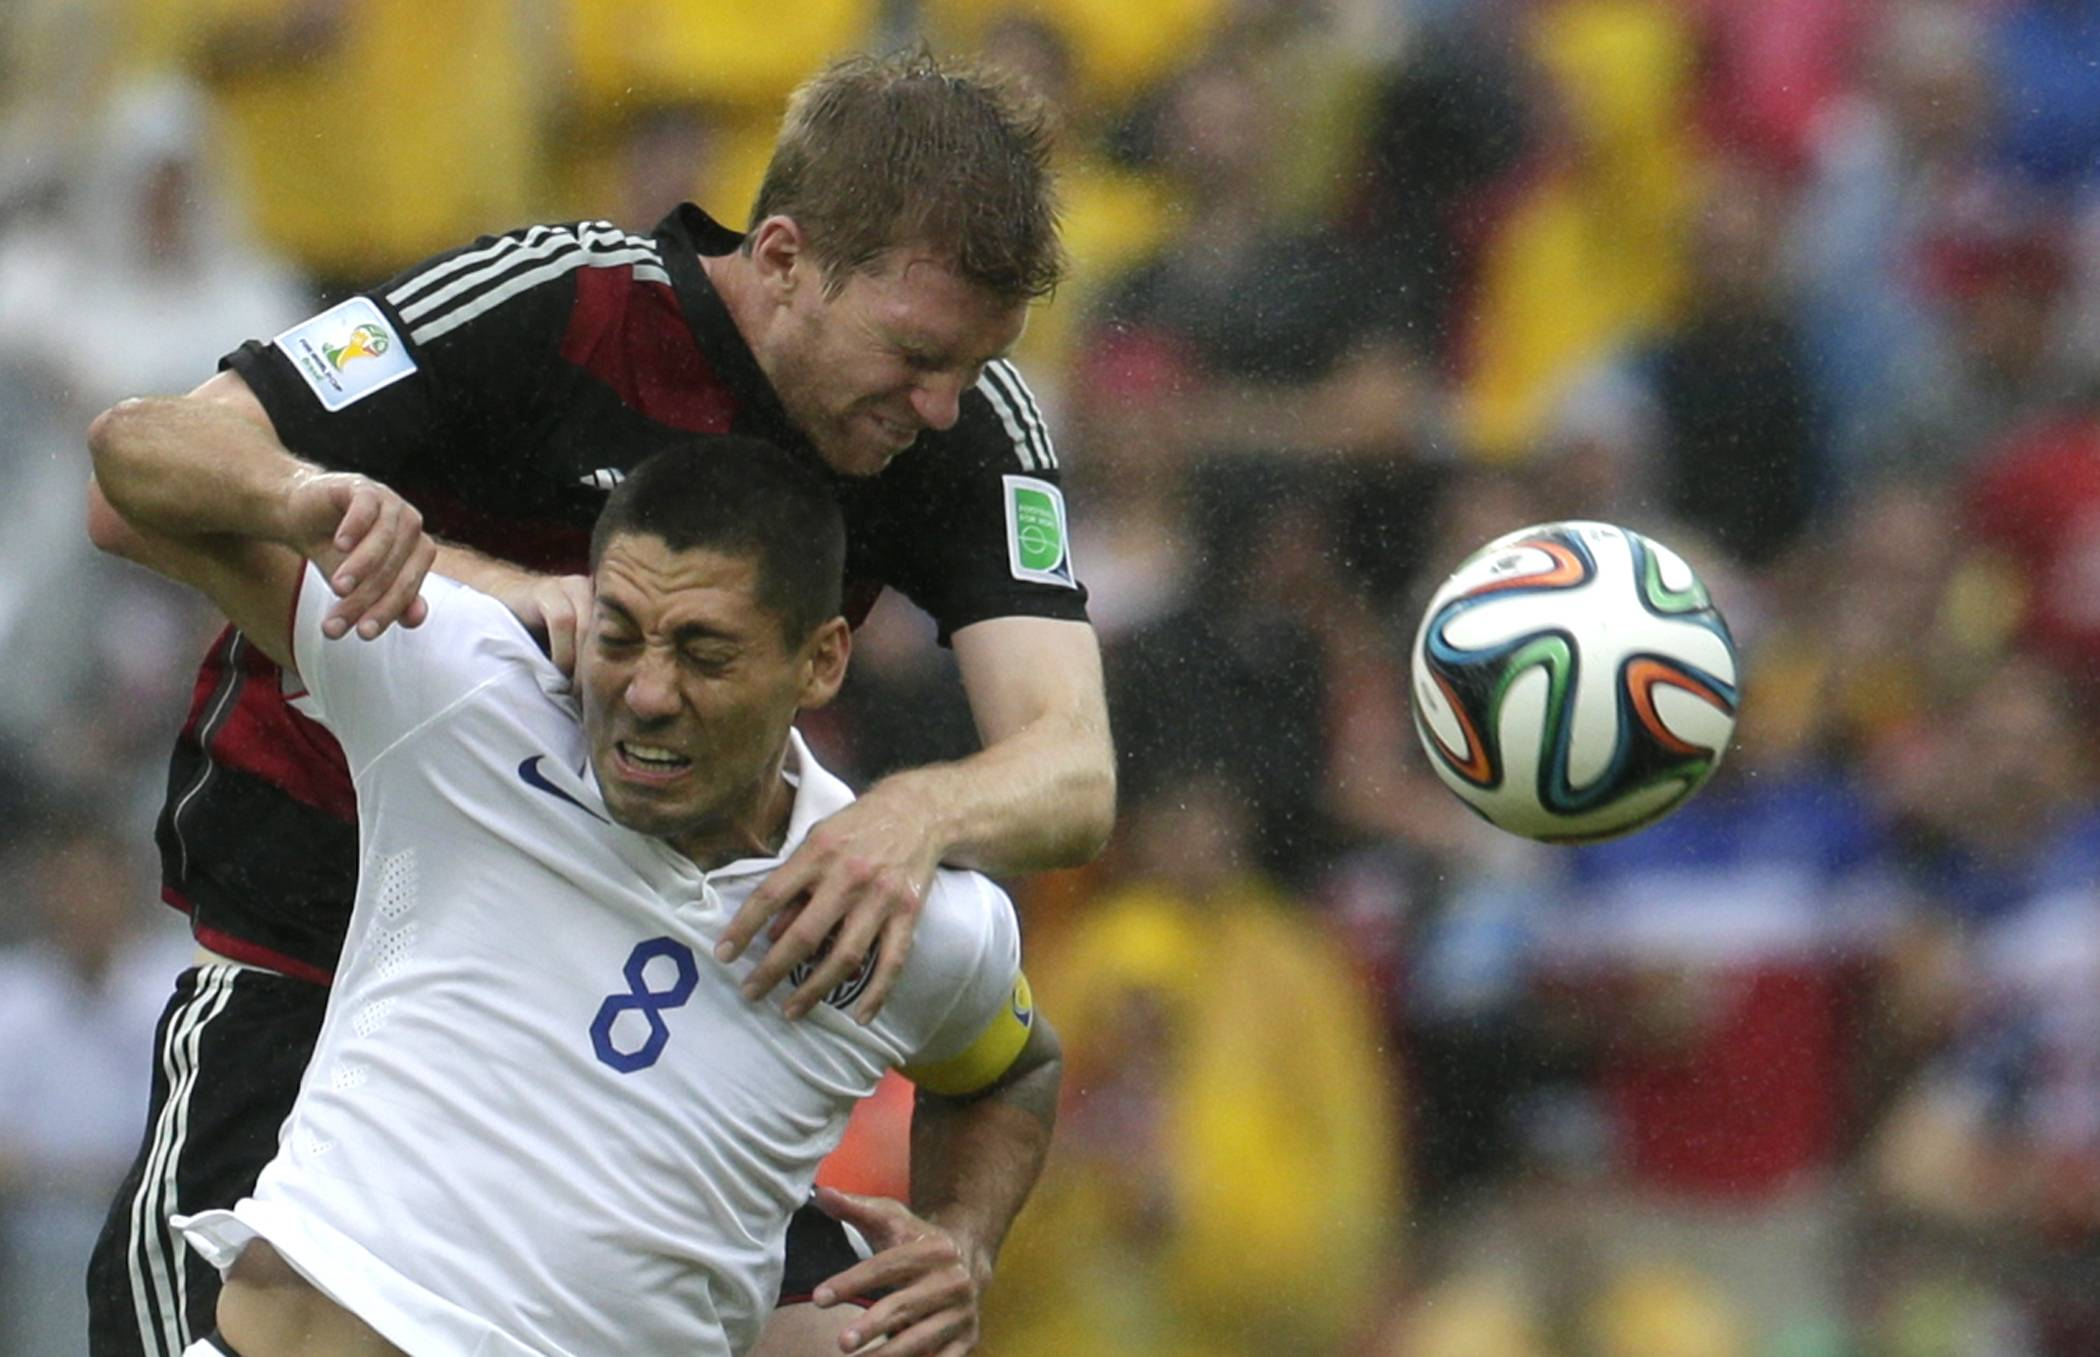 Germany's Per Mertesacker, back, and United States' Clint Dempsey go for a header during the group G World Cup soccer match between the USA and Germany at the Arena Pernambuco in Recife, Brazil, Thursday, June 26, 2014.